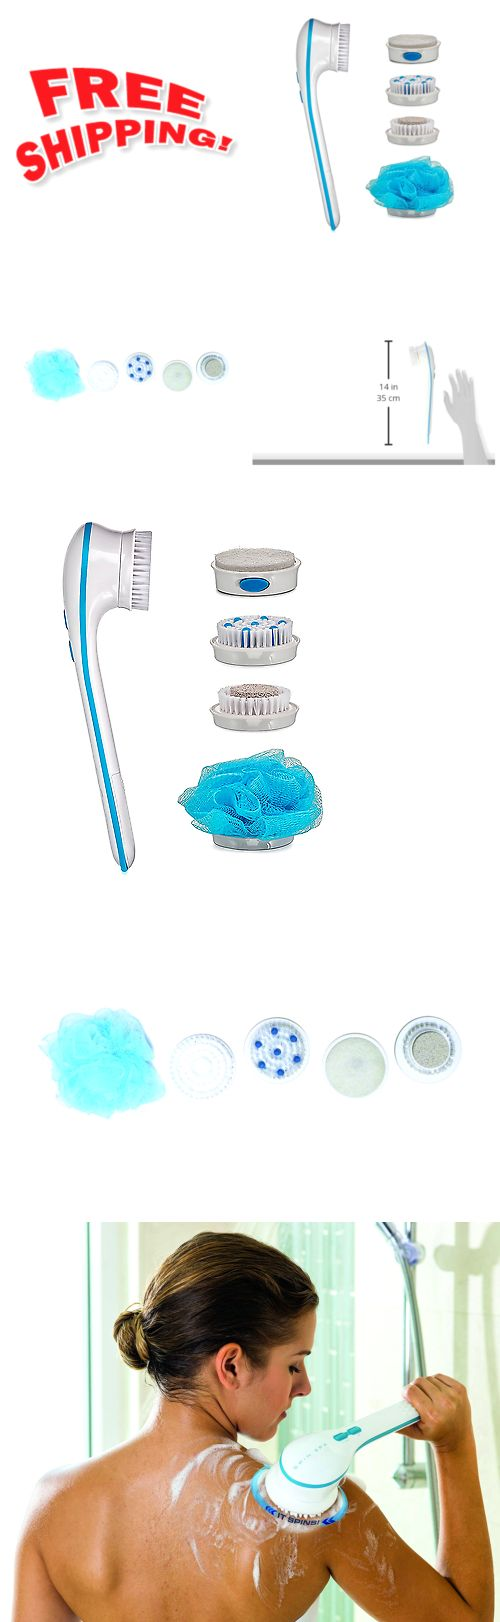 Bath Brushes and Sponges: New Spin Spa Facial And Body Brush Electric Back Shower Scrub Exfoliate Cleansing -> BUY IT NOW ONLY: $62.5 on eBay!